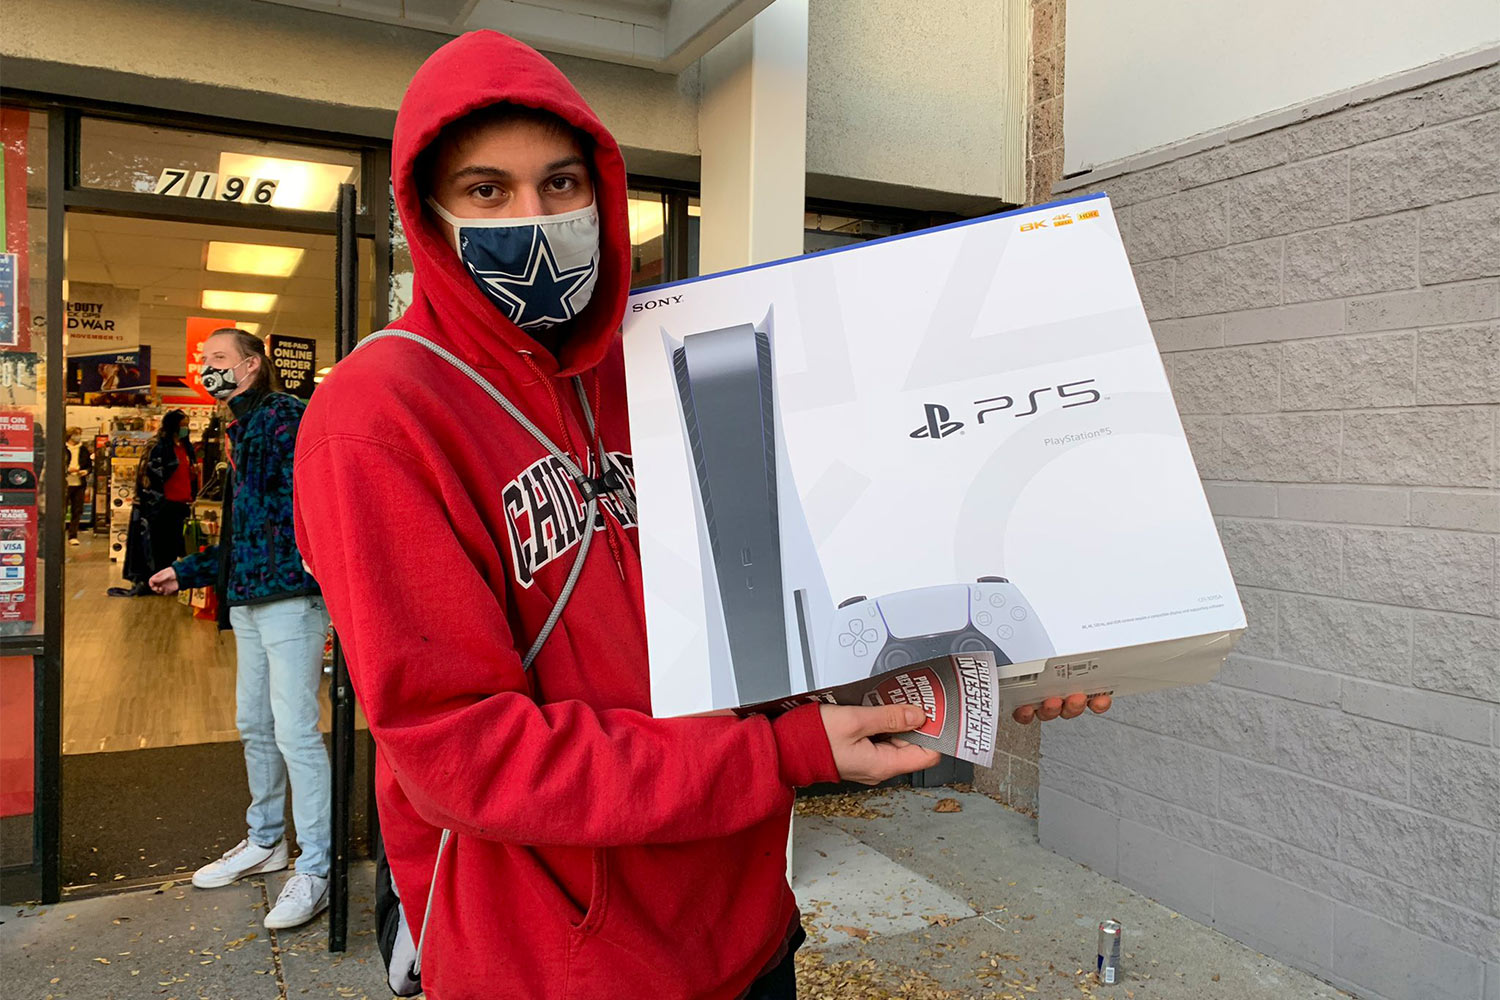 20-Year-Old Calif. Man Waits 36 hours Outside of Video Game Store to Buy PlayStation 5